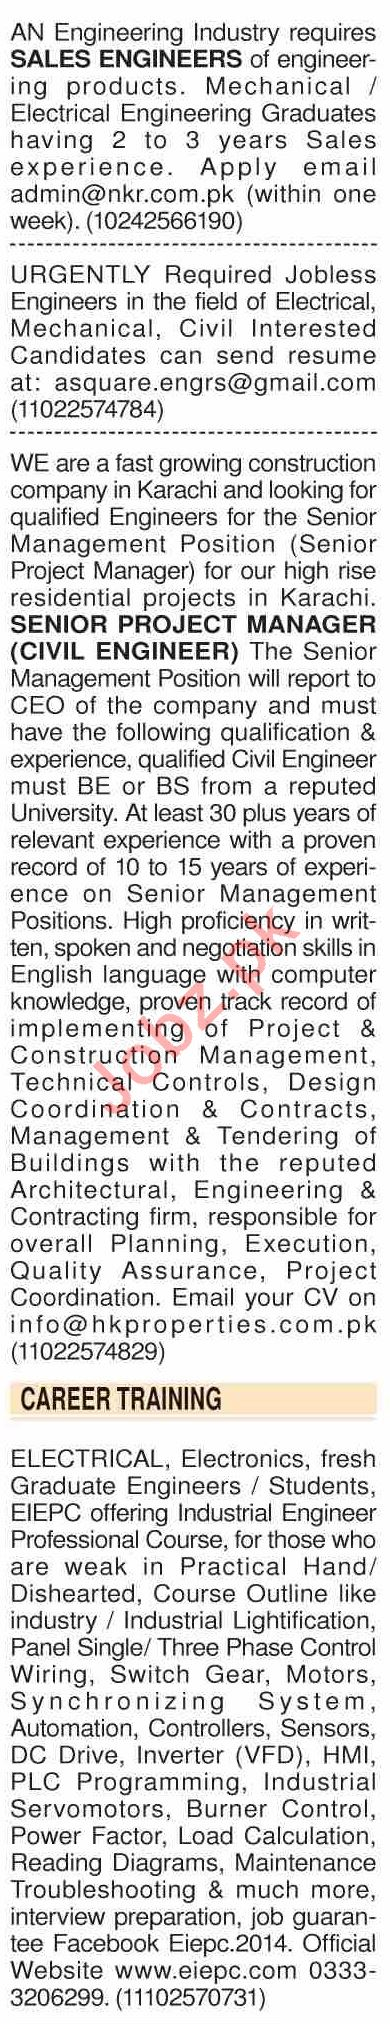 Dawn Sunday Classified Ads 1st Dec 2019 for Engineering